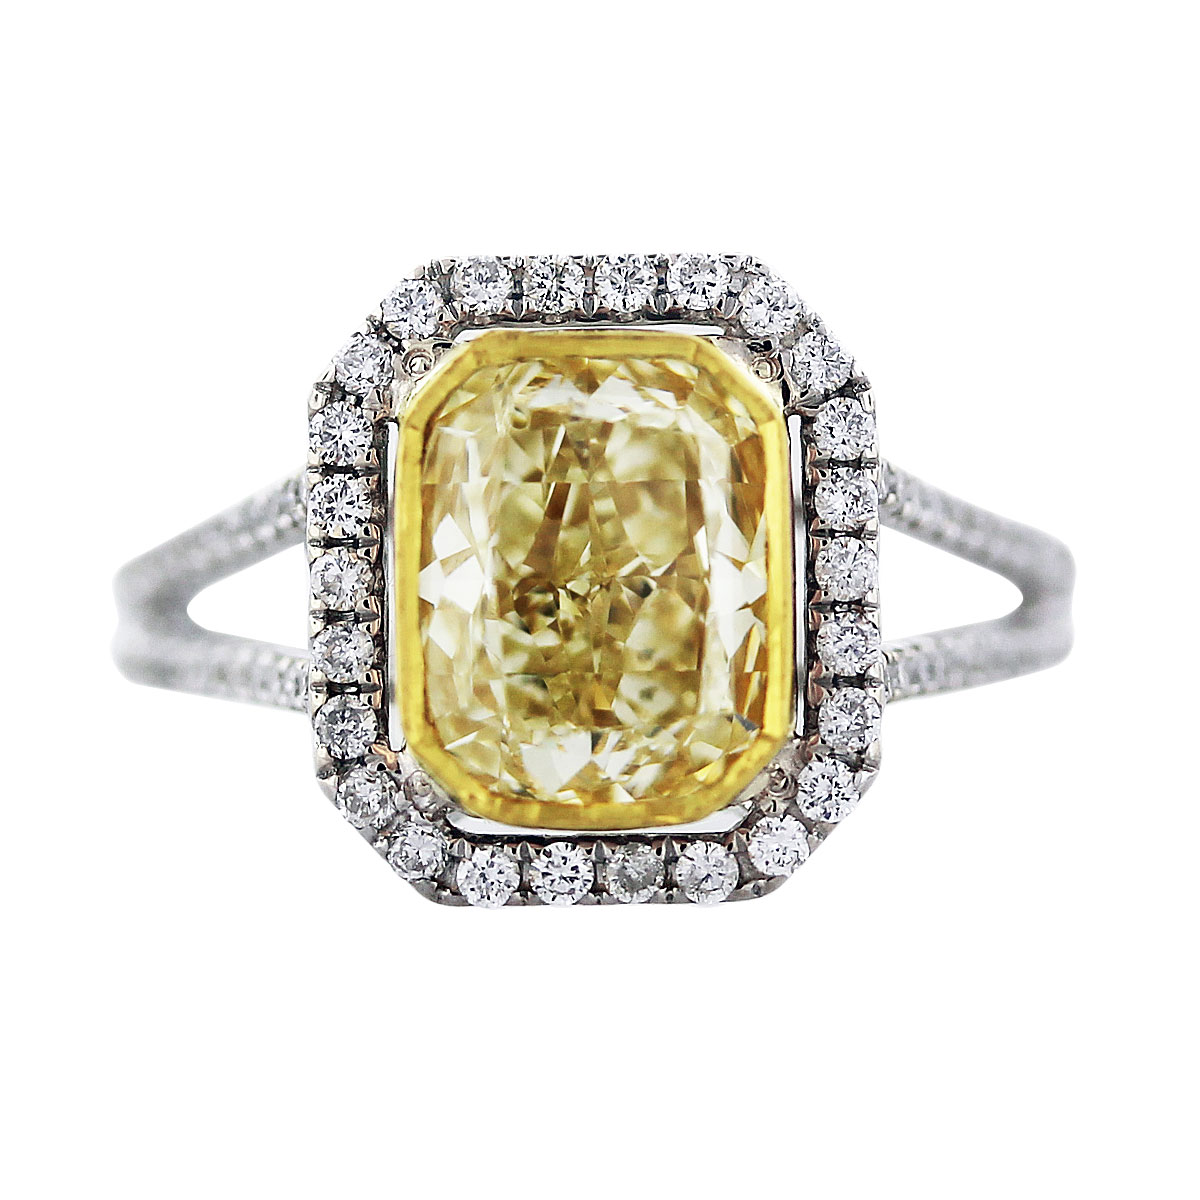 Cushion Cut Fancy Yellow Diamond Engagement Ring In 18k